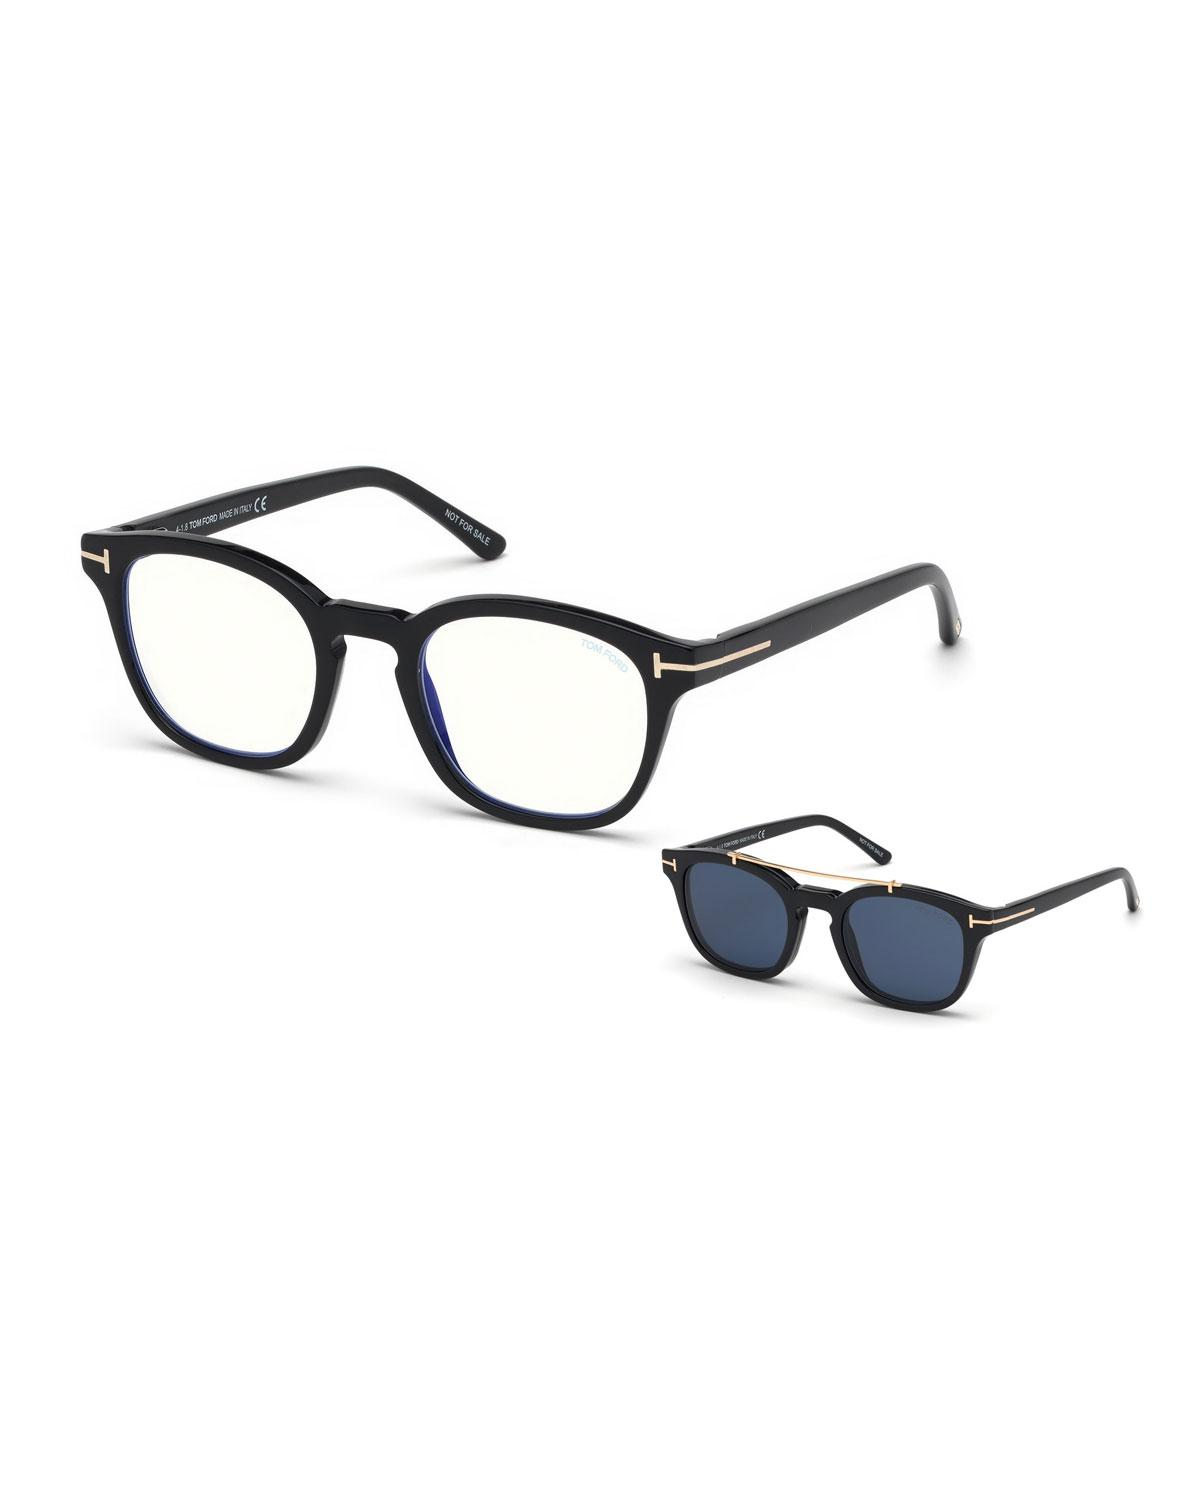 0a89f8450a54e Tom Ford. Women s Men s Square Optical Glasses W  Clip On Blue Block Lenses